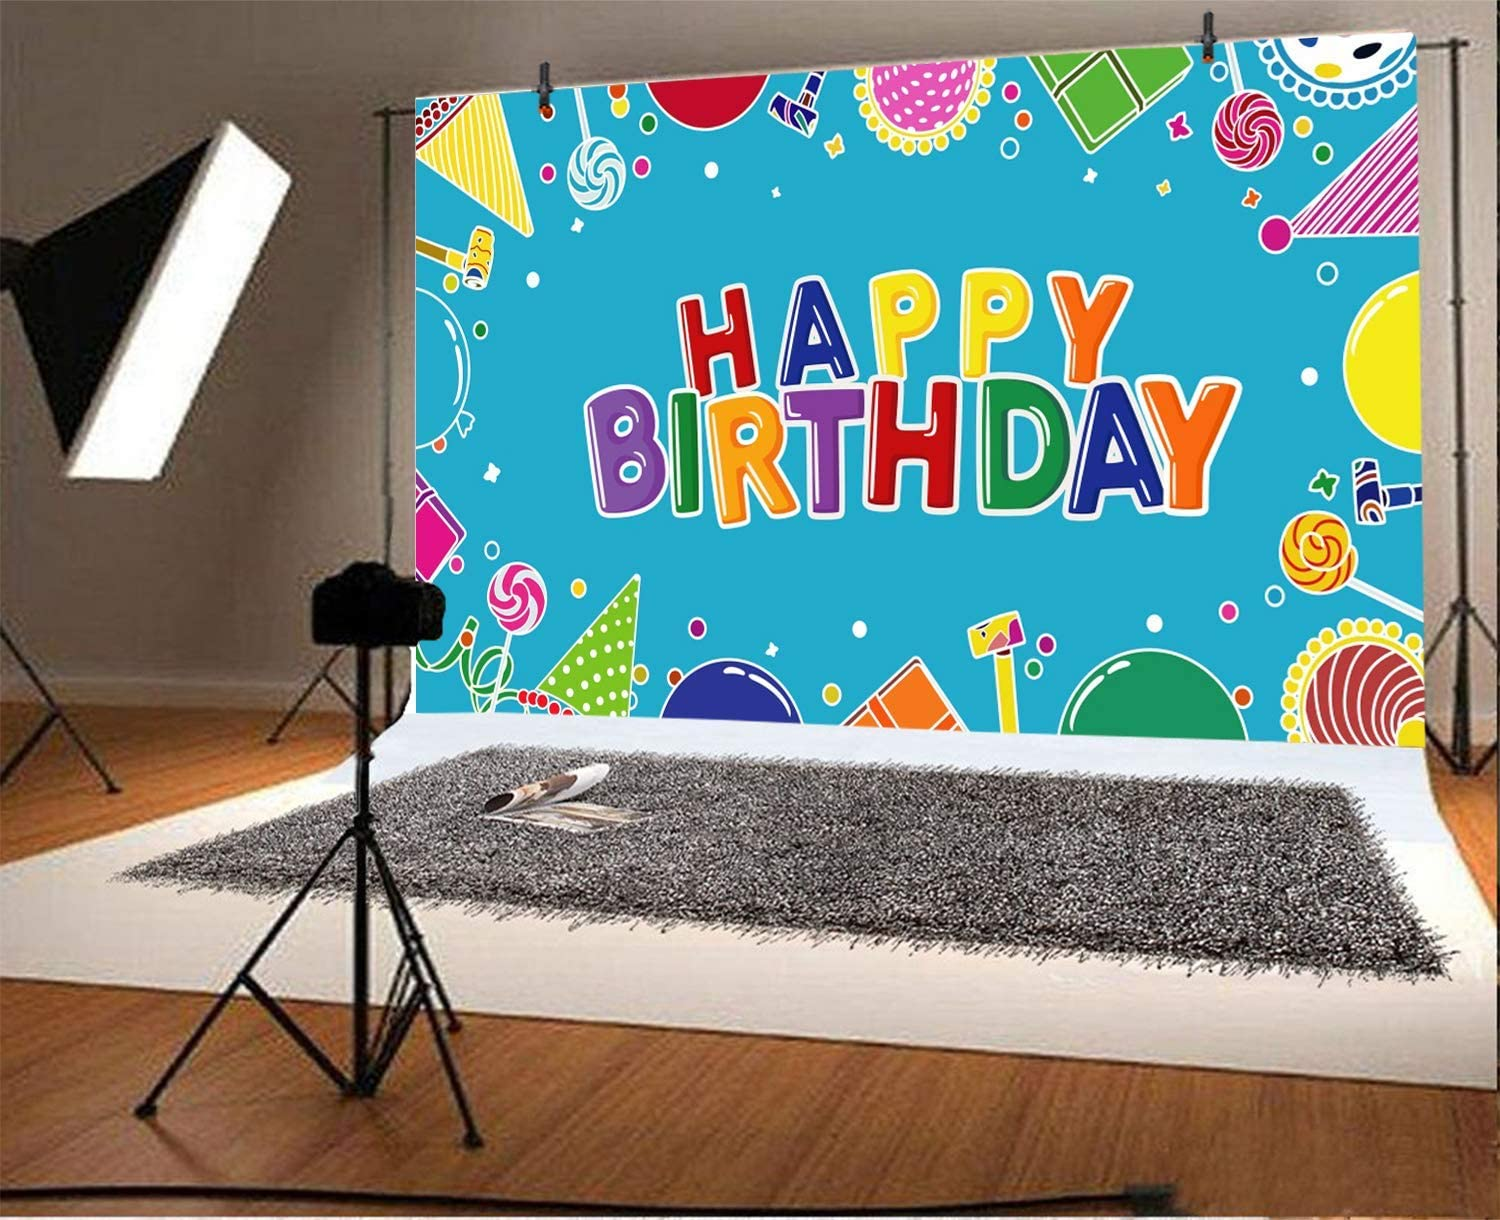 Happy Birthday Backdrop 10x6.5ft Blue Cartoon Polyester Photography Background Colorful Lollipop Birthday Caps Balloons Children Baby Kids Girls Boys Party Banner Photo Props Studio Decoration